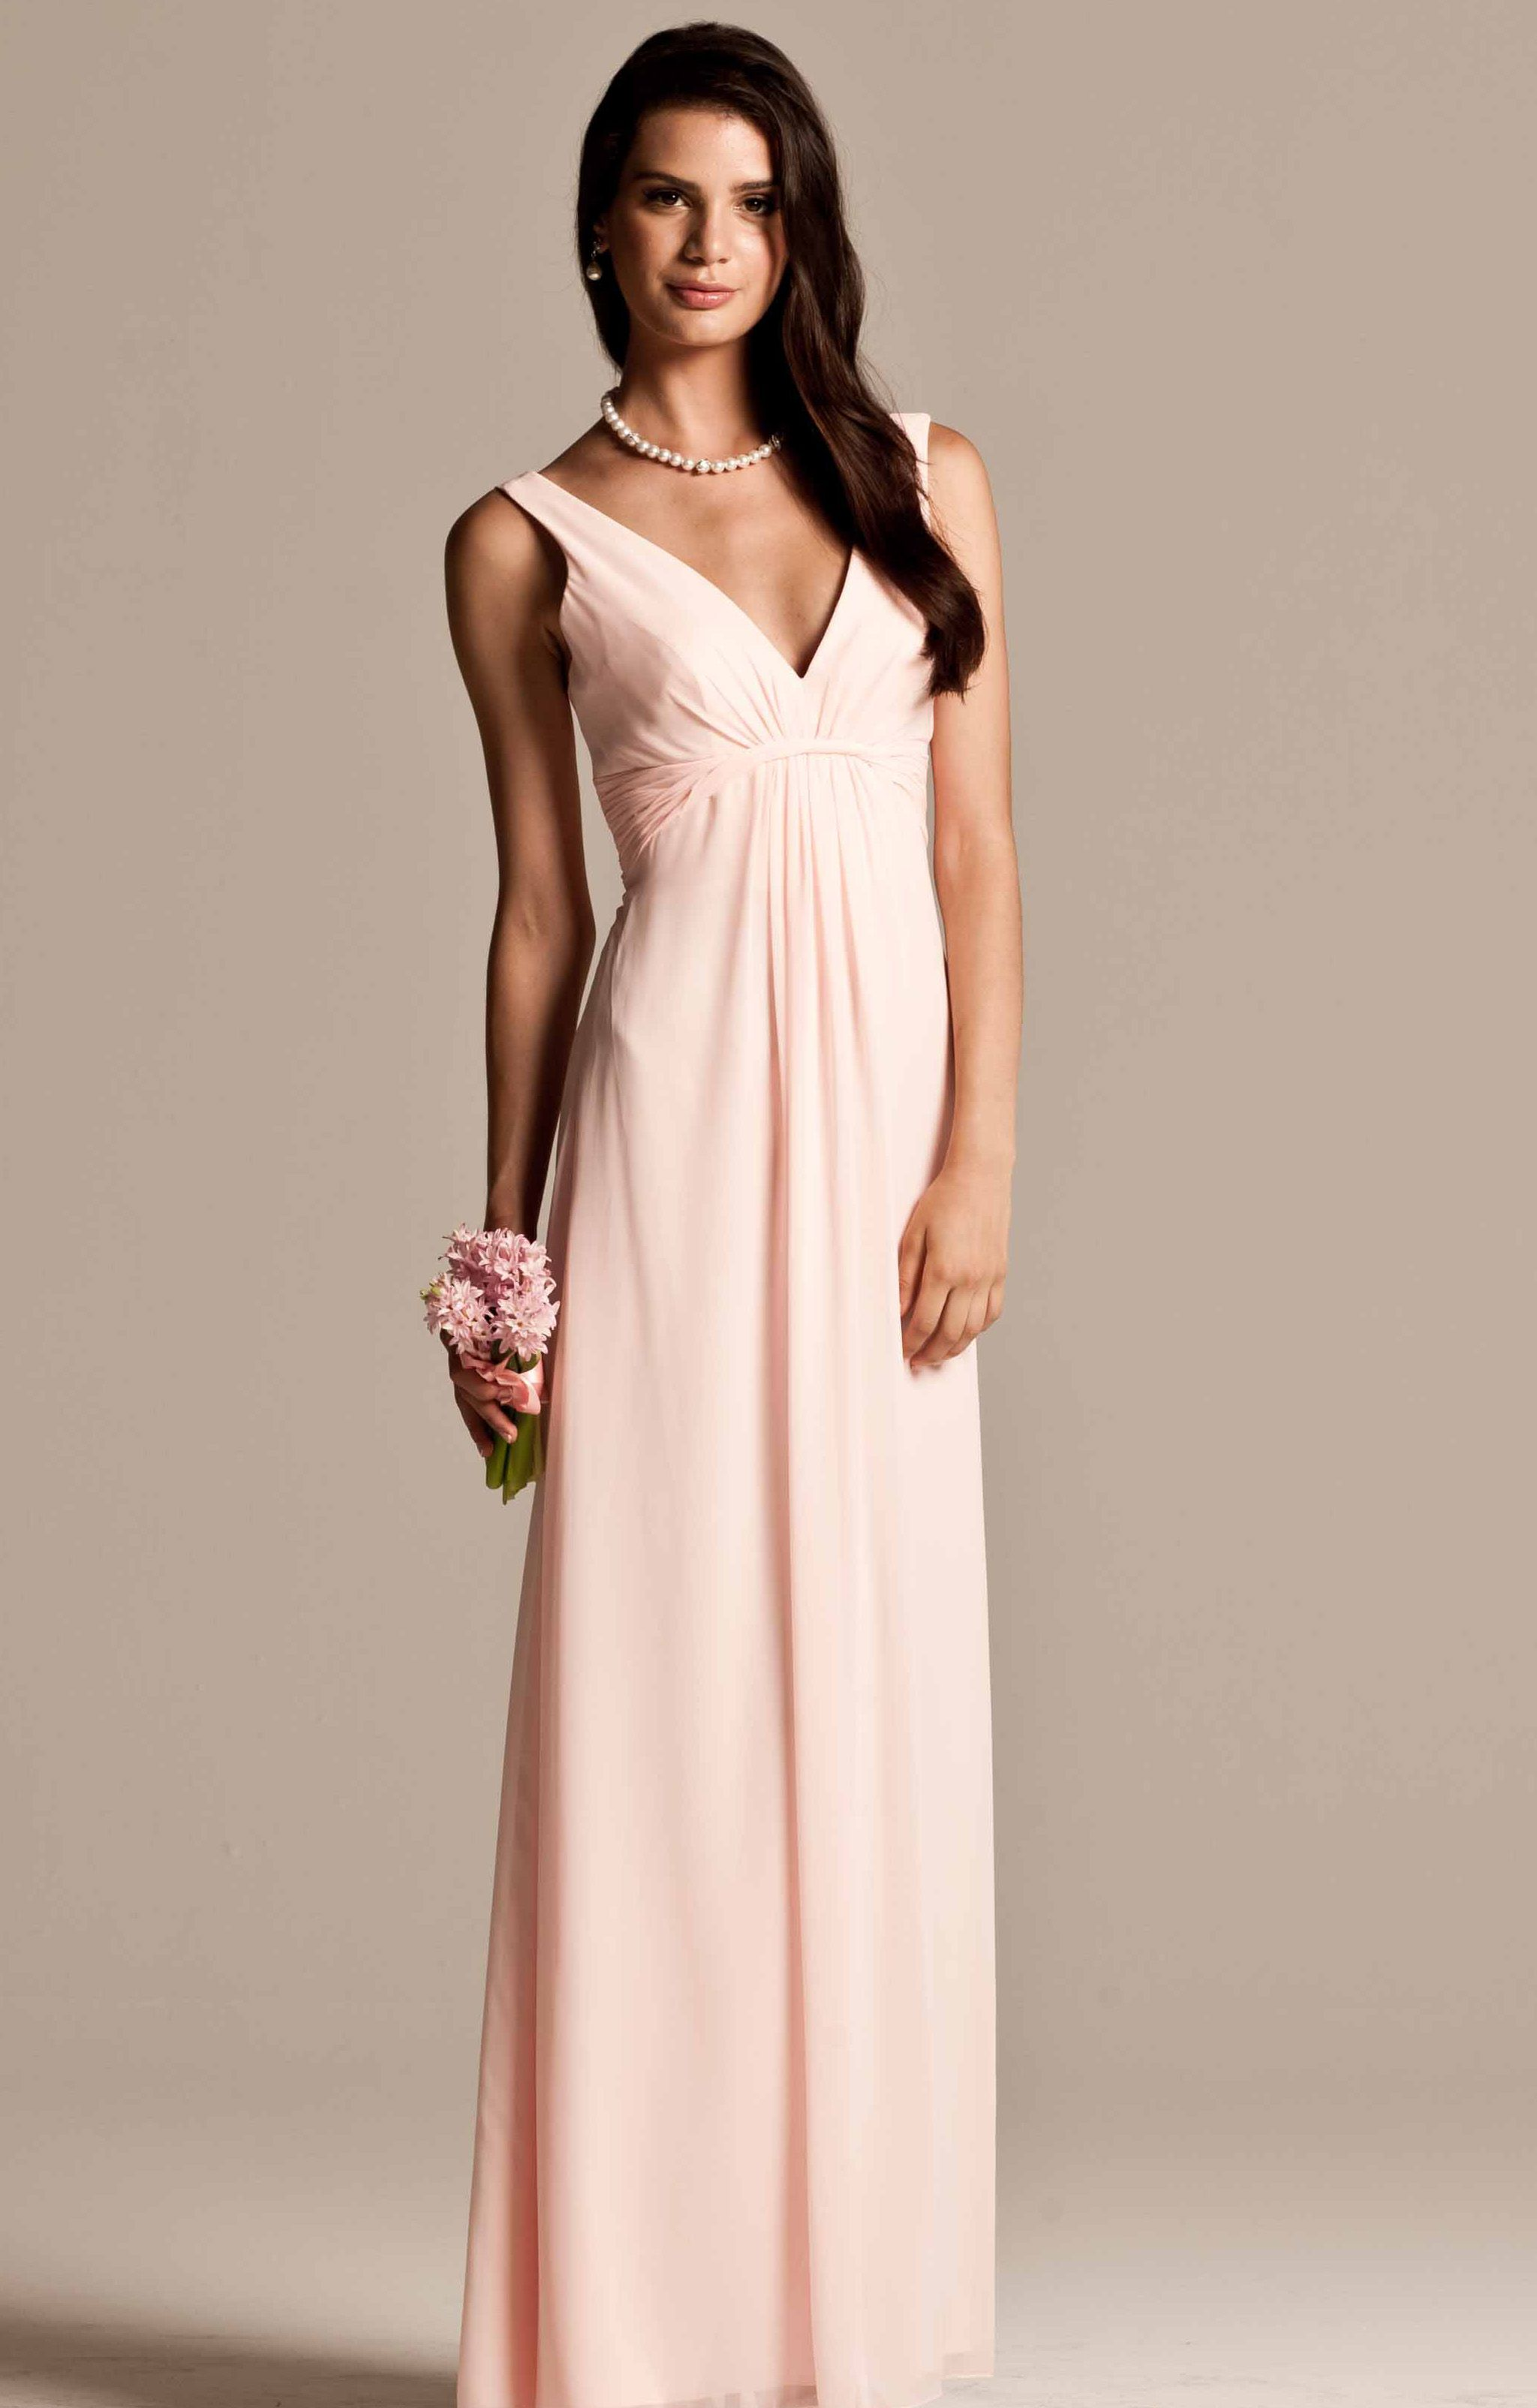 Amelia bridesmaid dresses in pink by natasha millani httpwww blue bridesmaid dresses your bridesmaids will look chic and elegant in blue bridesmaid dresses you can order blue bridesmaid dresses from our online ombrellifo Gallery